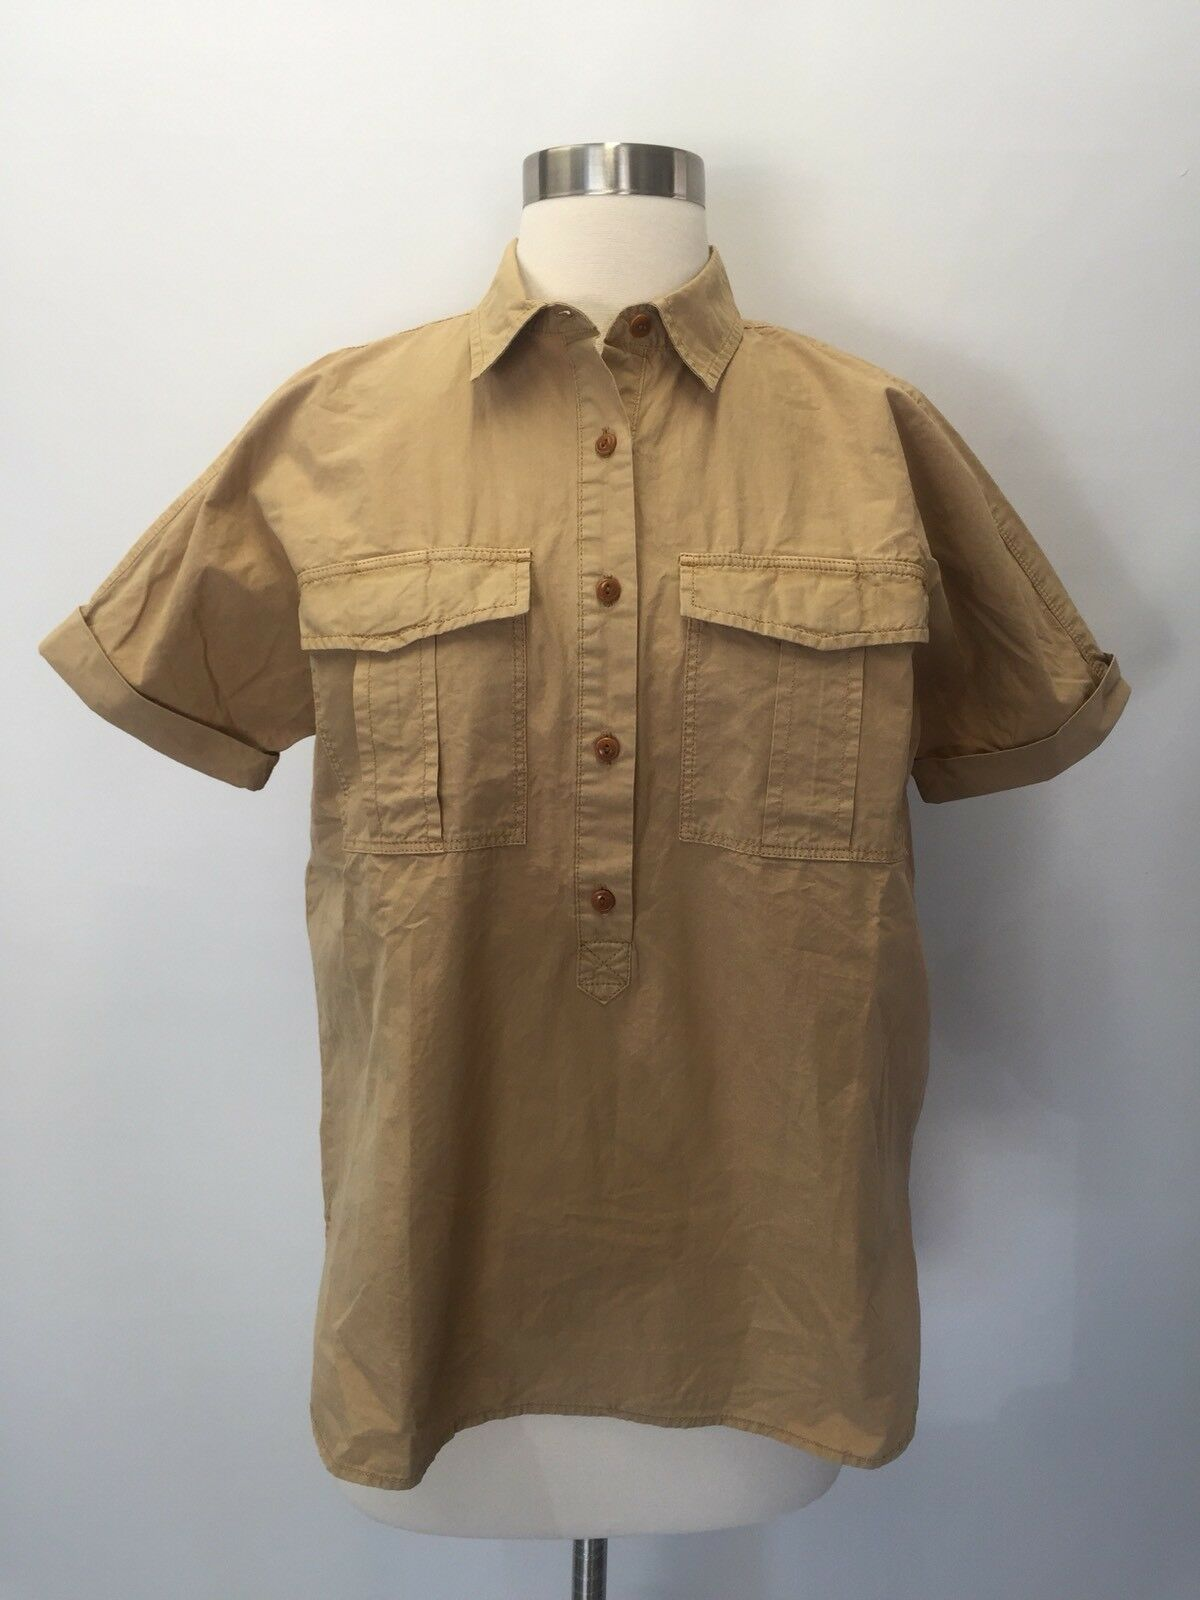 New J Crew Garment-Dyed Utility Popover Shirt Top Sz 0 G5196